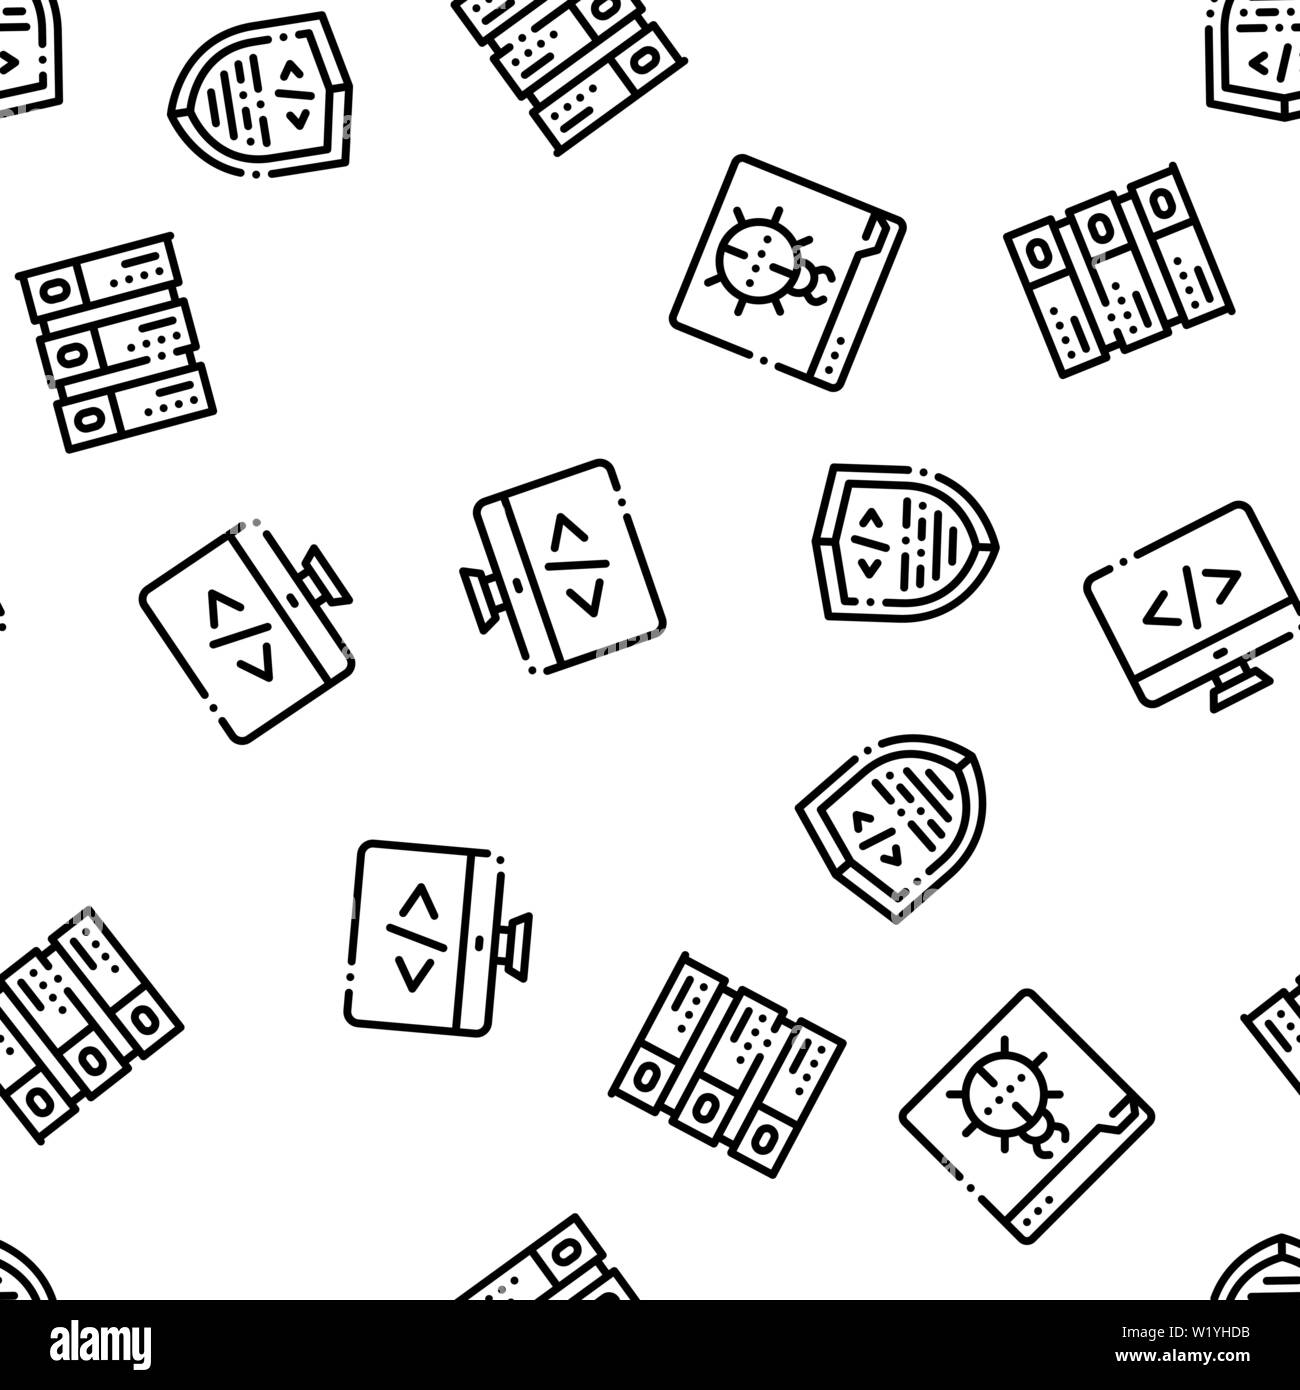 Coding System Vector Seamless Pattern - Stock Image